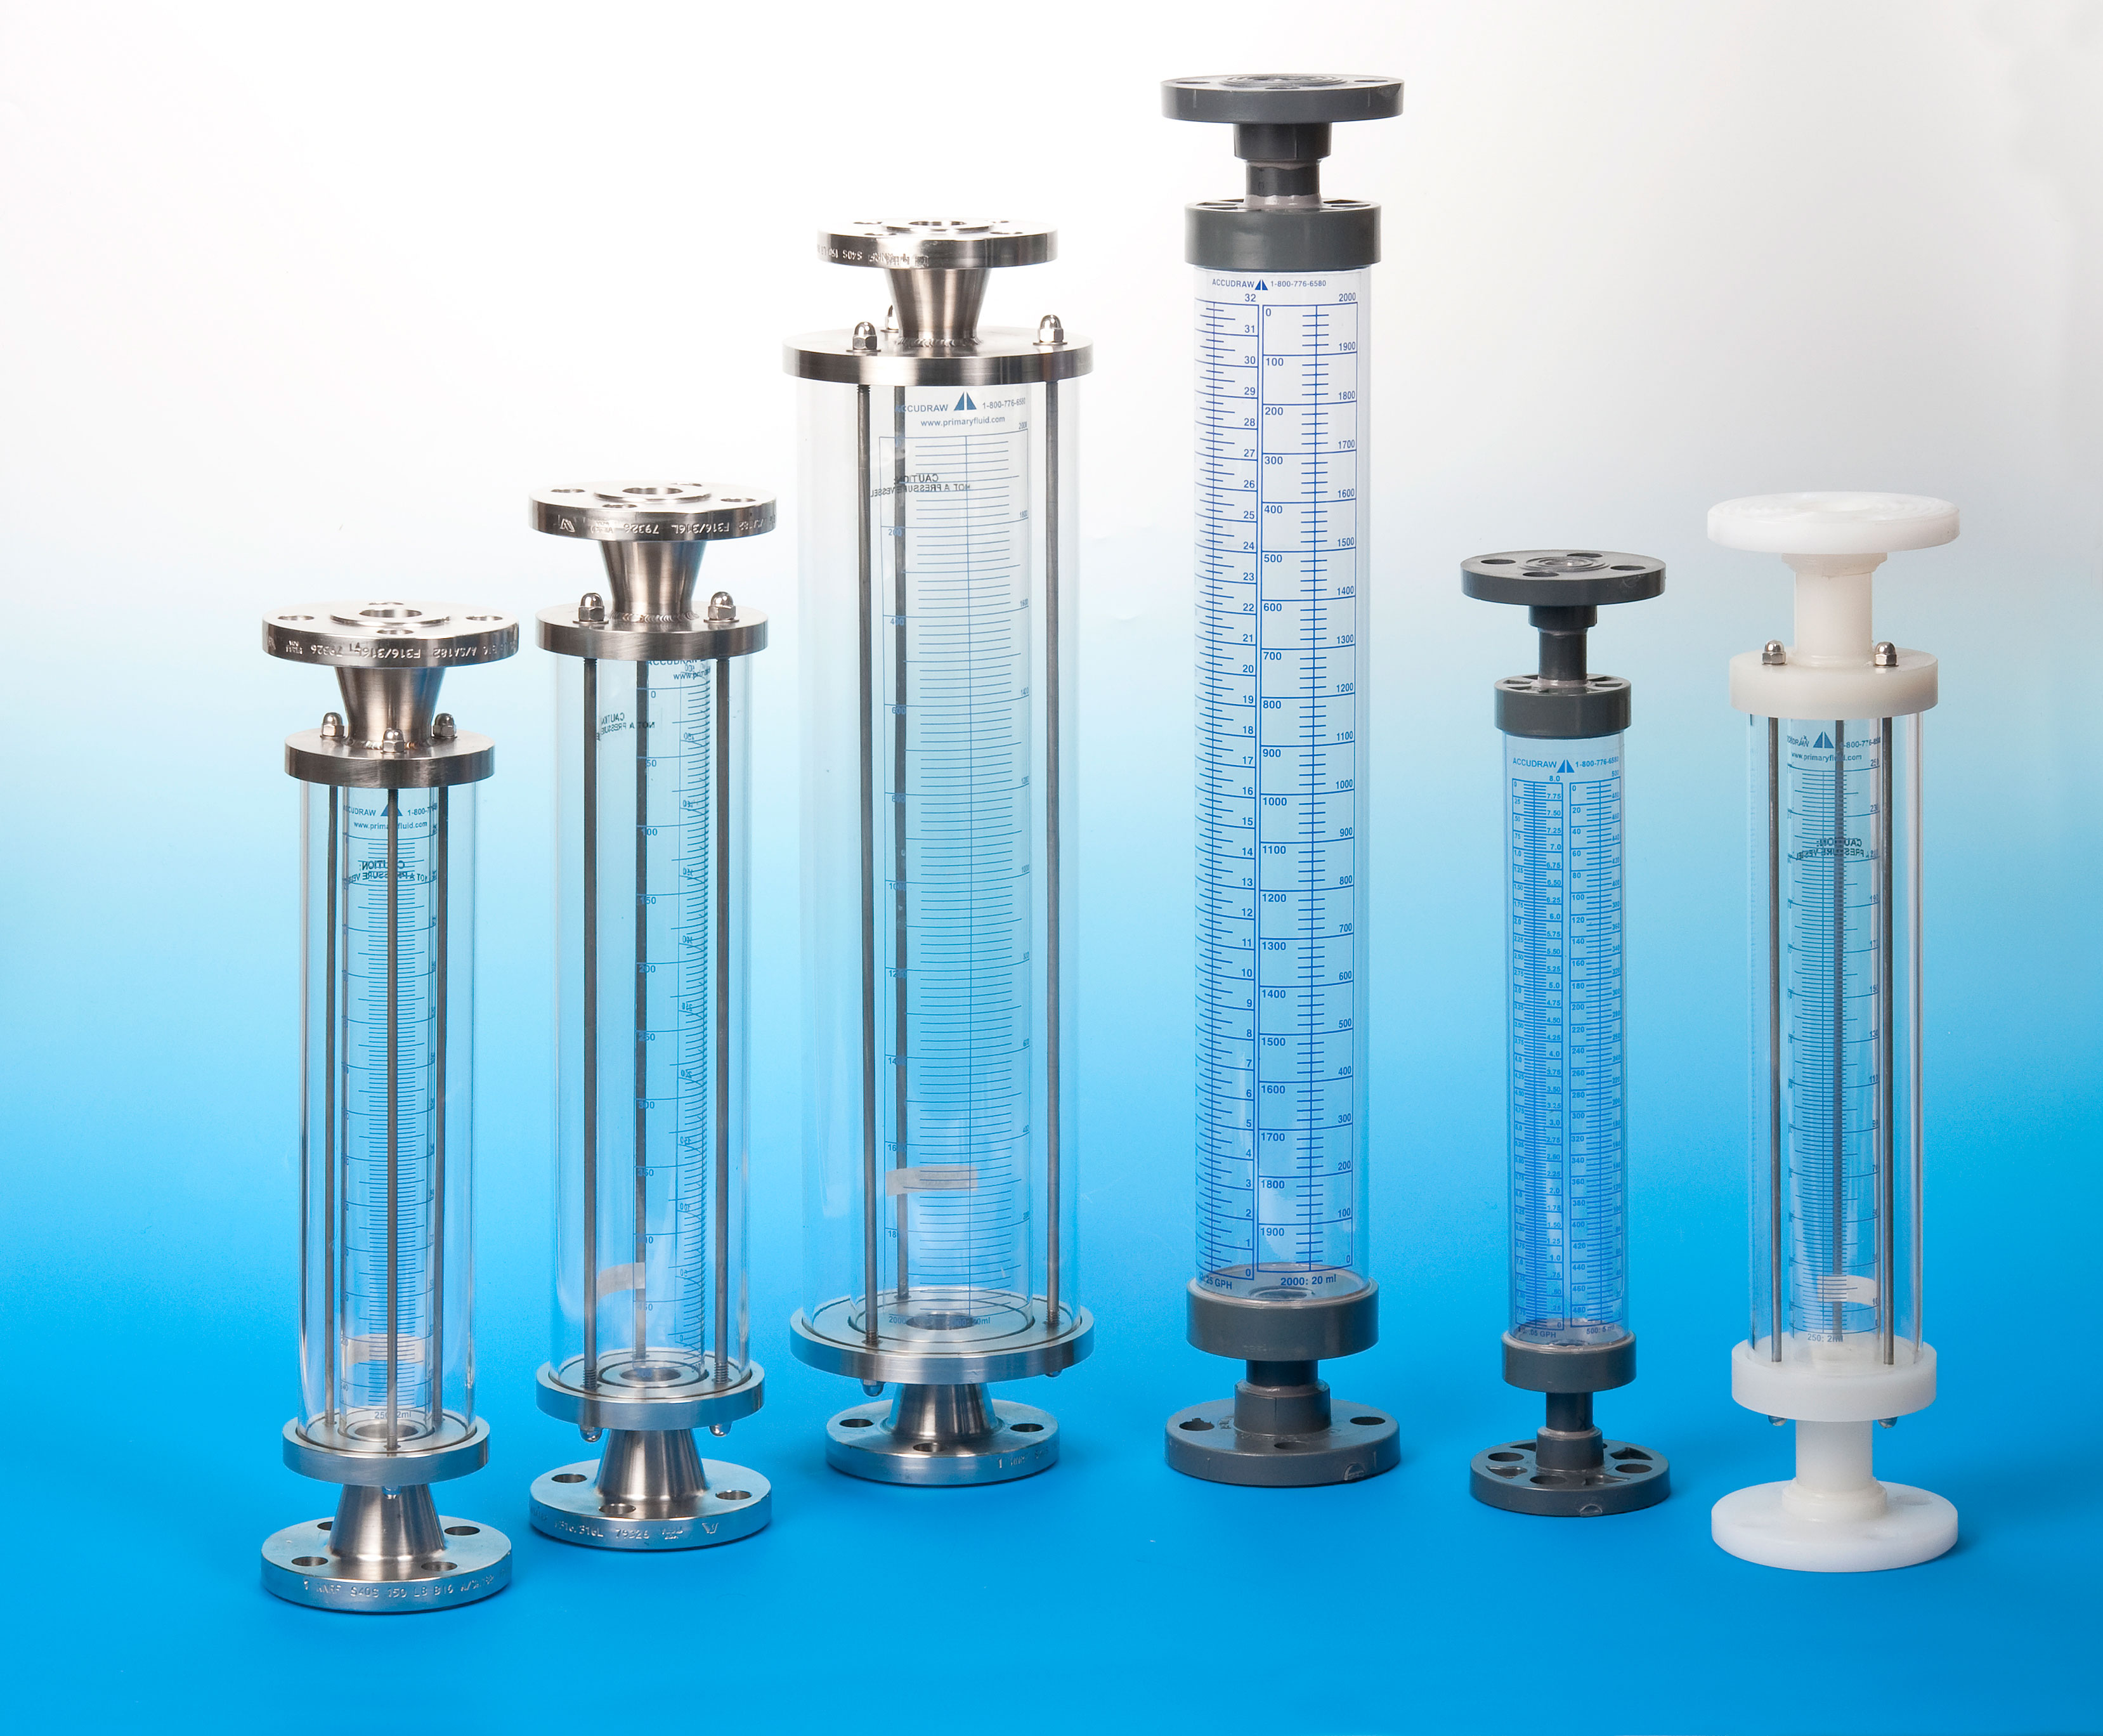 AccuDraw Calibration Cylinders in Glass and Plastic